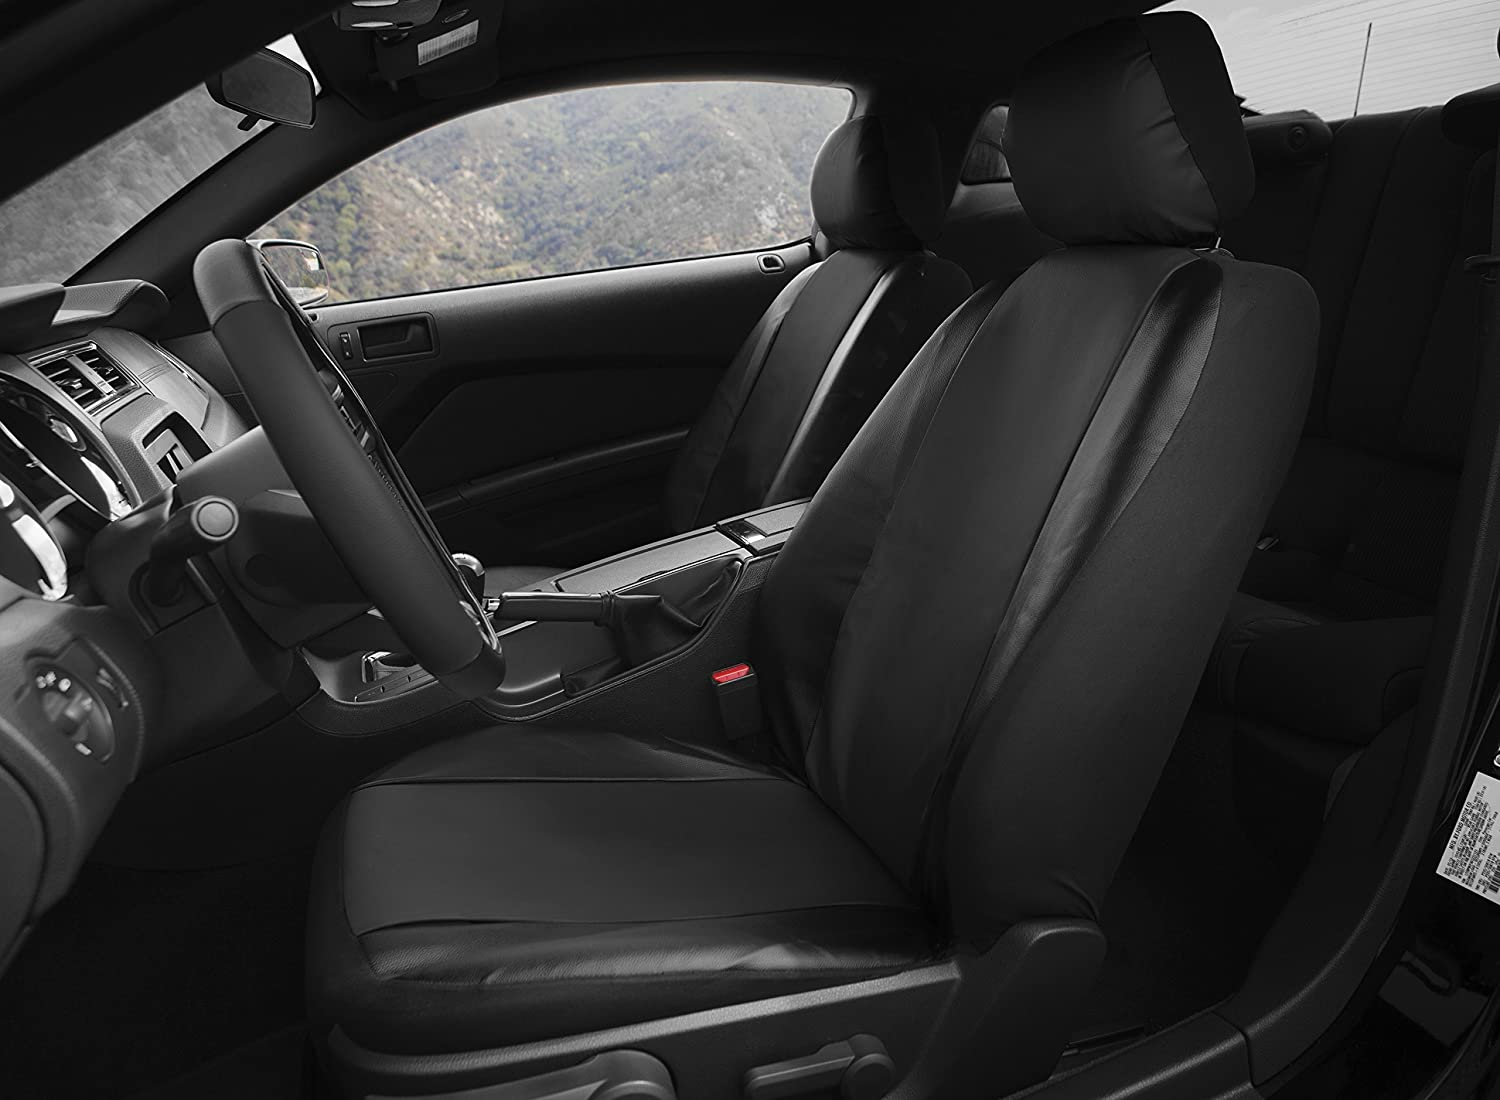 Steering Wheel Cover Universal Fit for Car Truck OxGord 17pc Faux Leather Black Car Seat Covers Set SUV Airbag